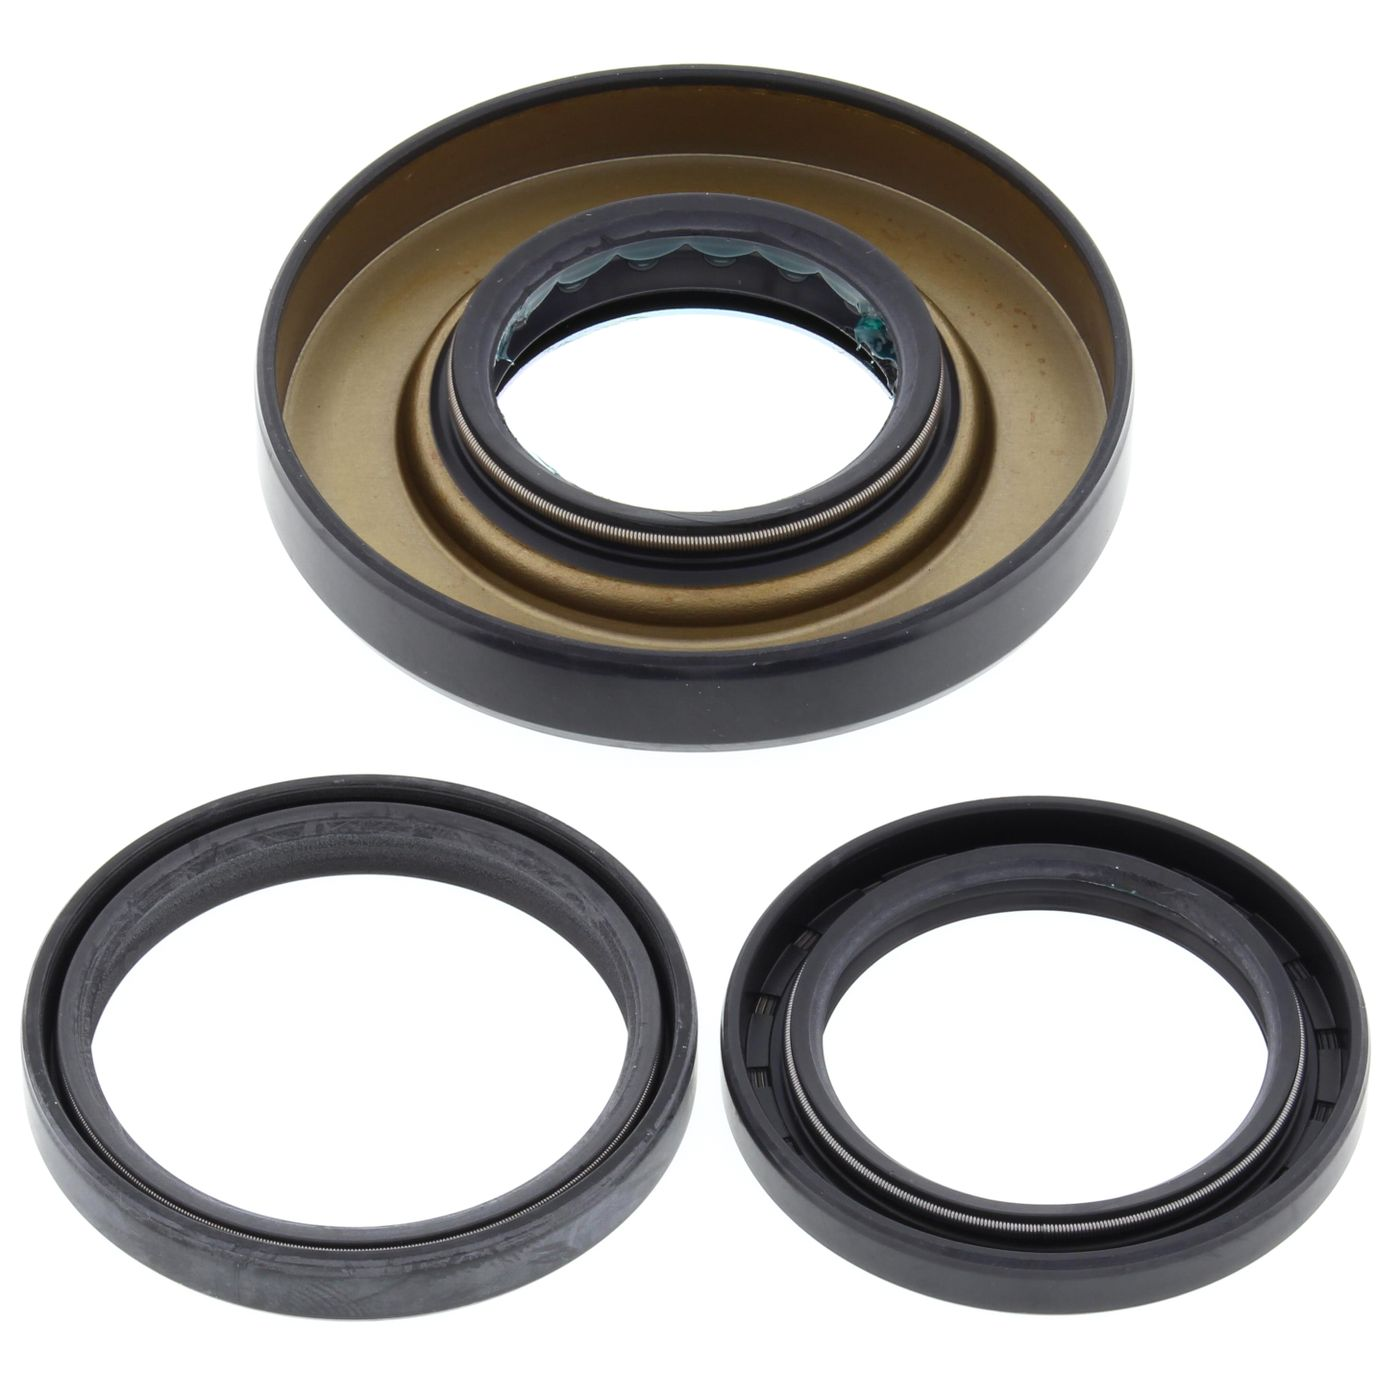 Wrp Diff Seal Kits - WRP252012-5 image